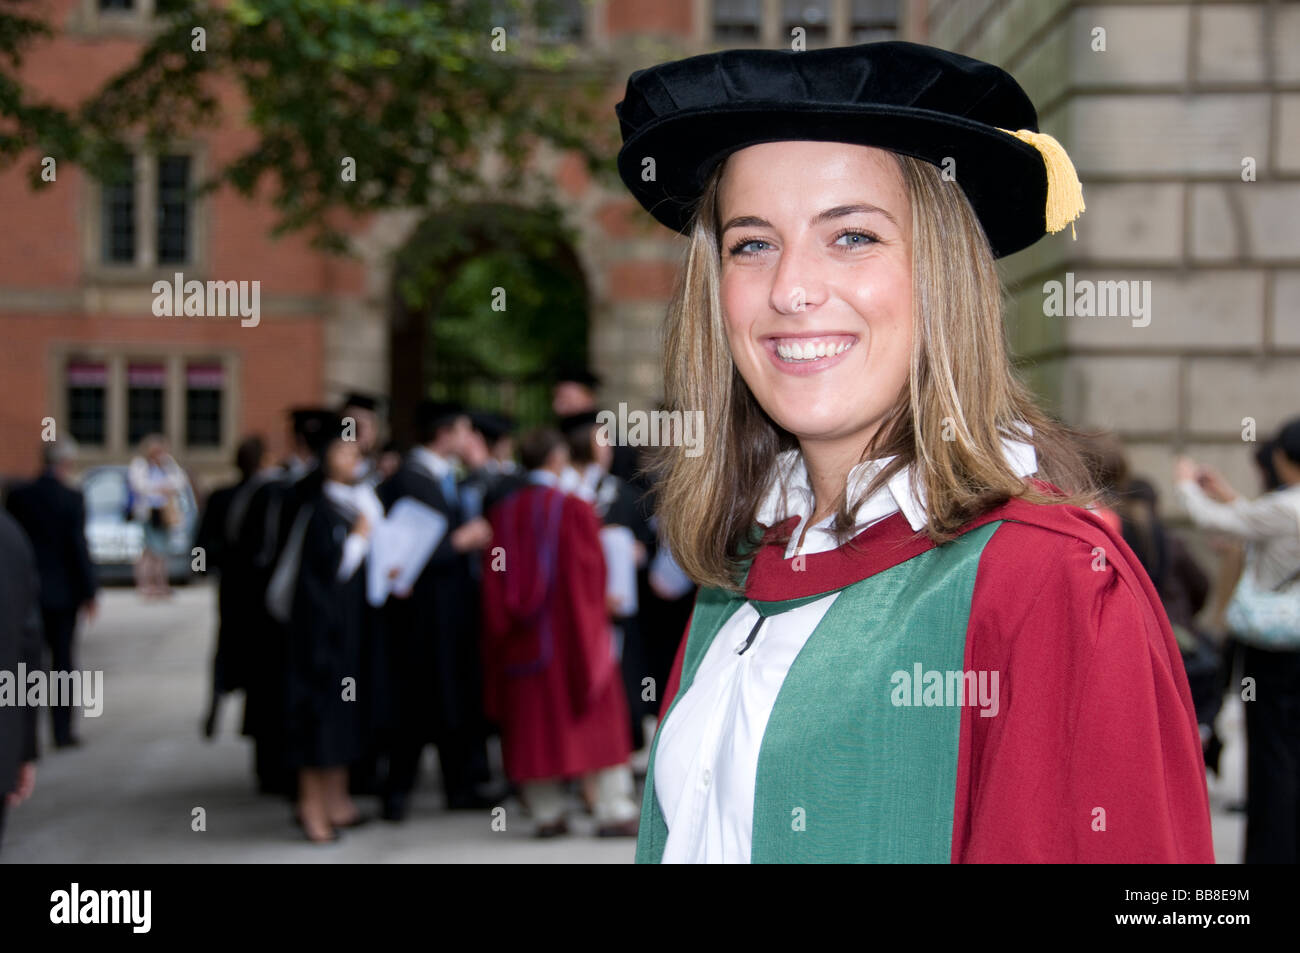 Doctoral Students Stock Photos & Doctoral Students Stock Images ...